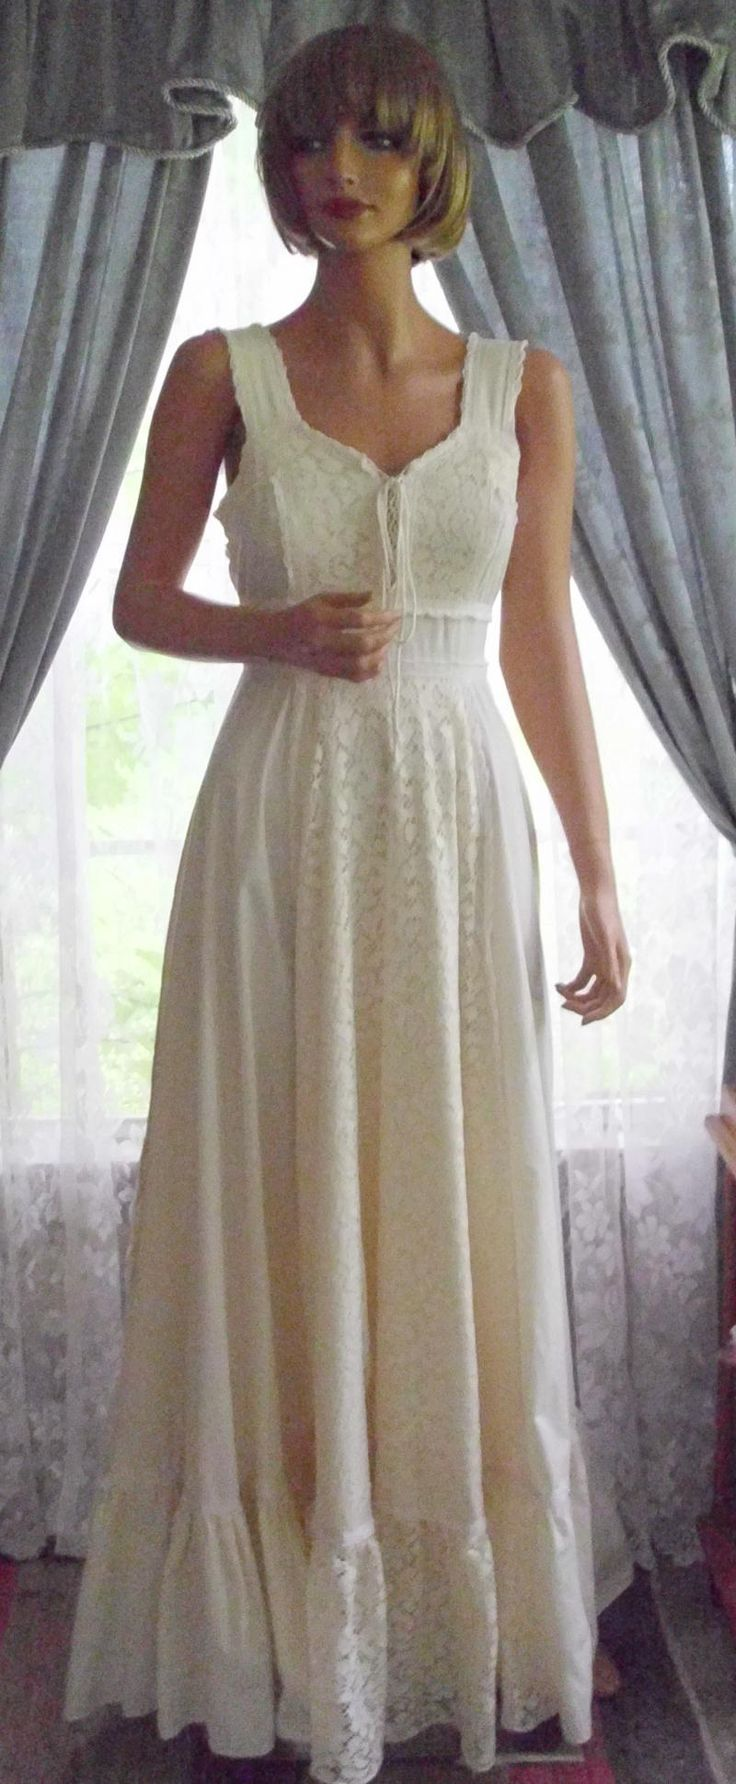 27 best gunny sax dresses love them images on pinterest vintage muslin and lace gunne sax by jessica mcclintock my senior prom dress ombrellifo Images